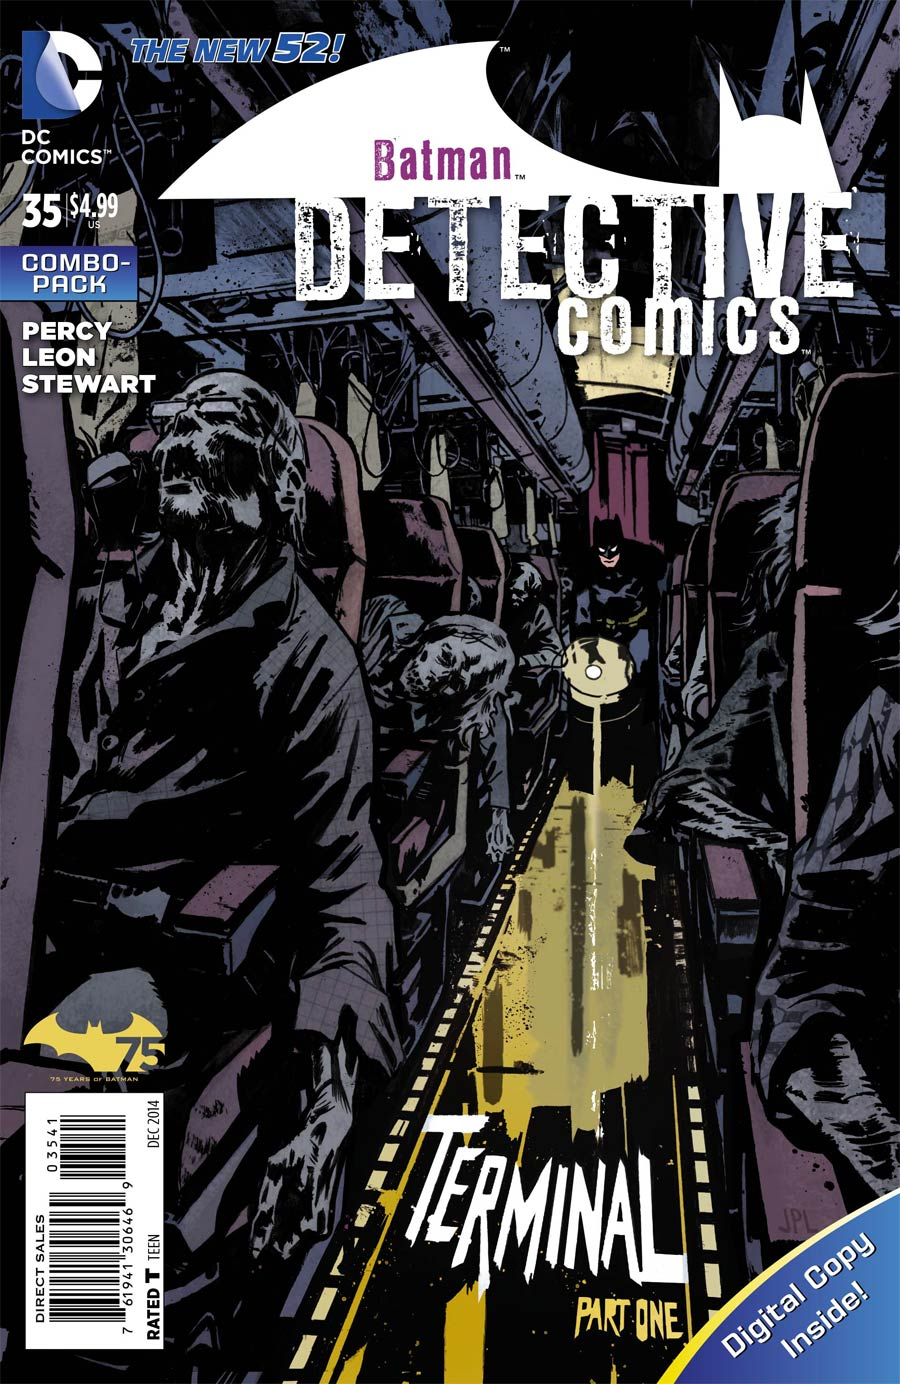 Detective Comics Vol 2 #35 Cover D Combo Pack Without Polybag